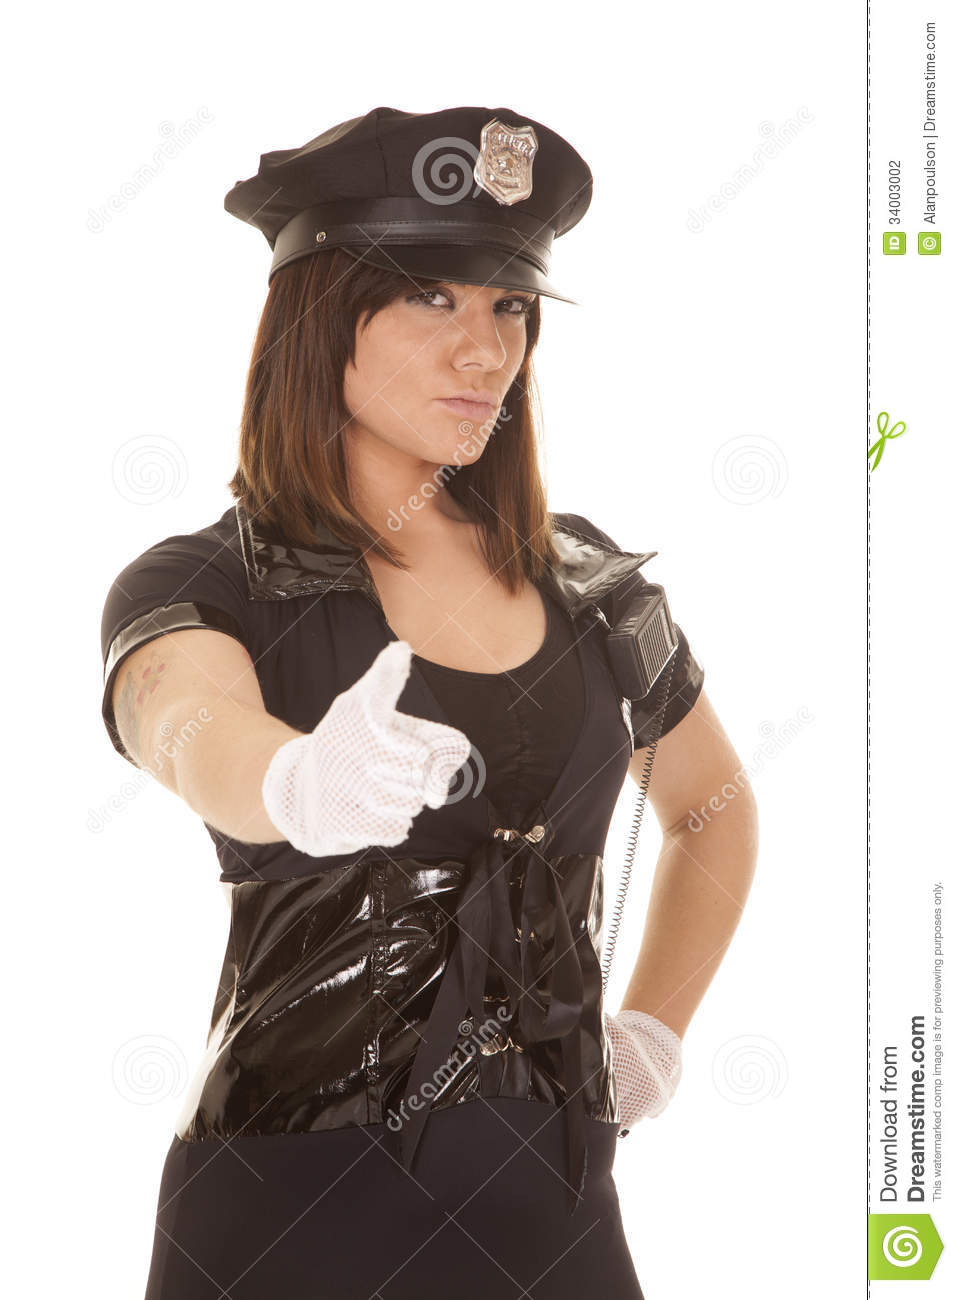 police woman with a serious expression on her face pointing her ...